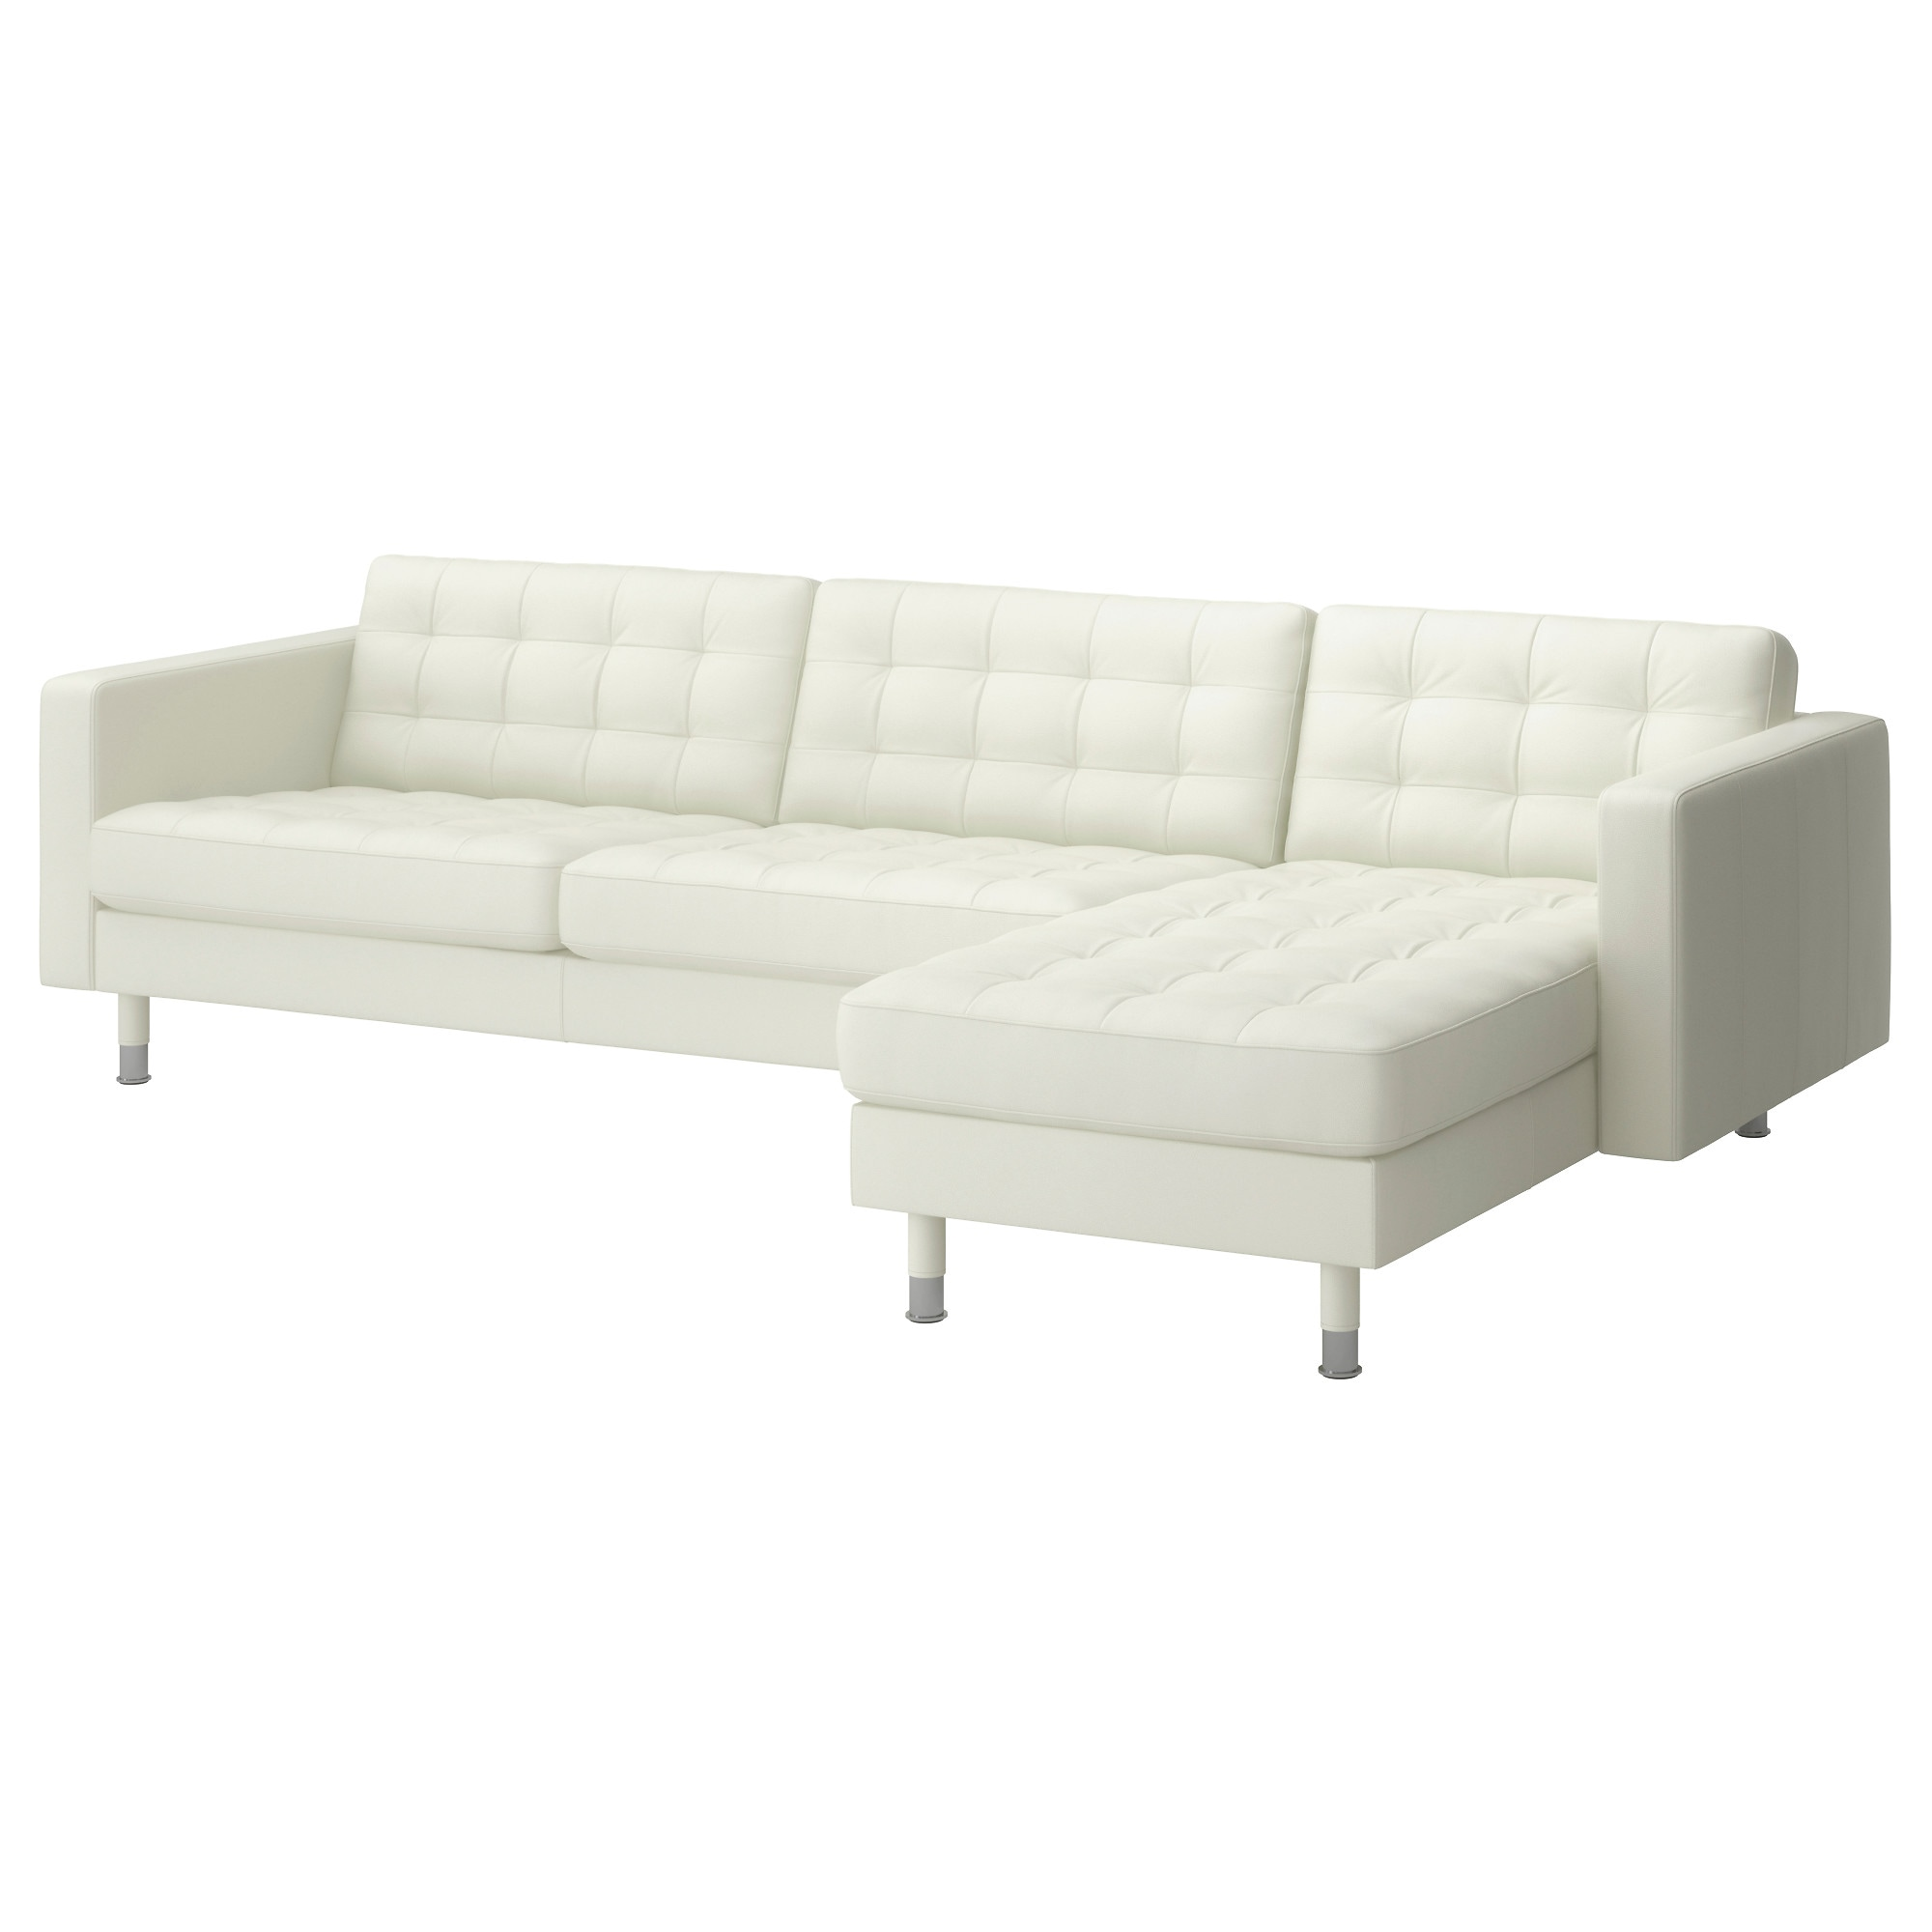 LANDSKRONA sectional 4-seat with chaise Grann Bomstad Grann/Bomstad white  sc 1 st  Ikea : leather sofa bed chaise - Sectionals, Sofas & Couches